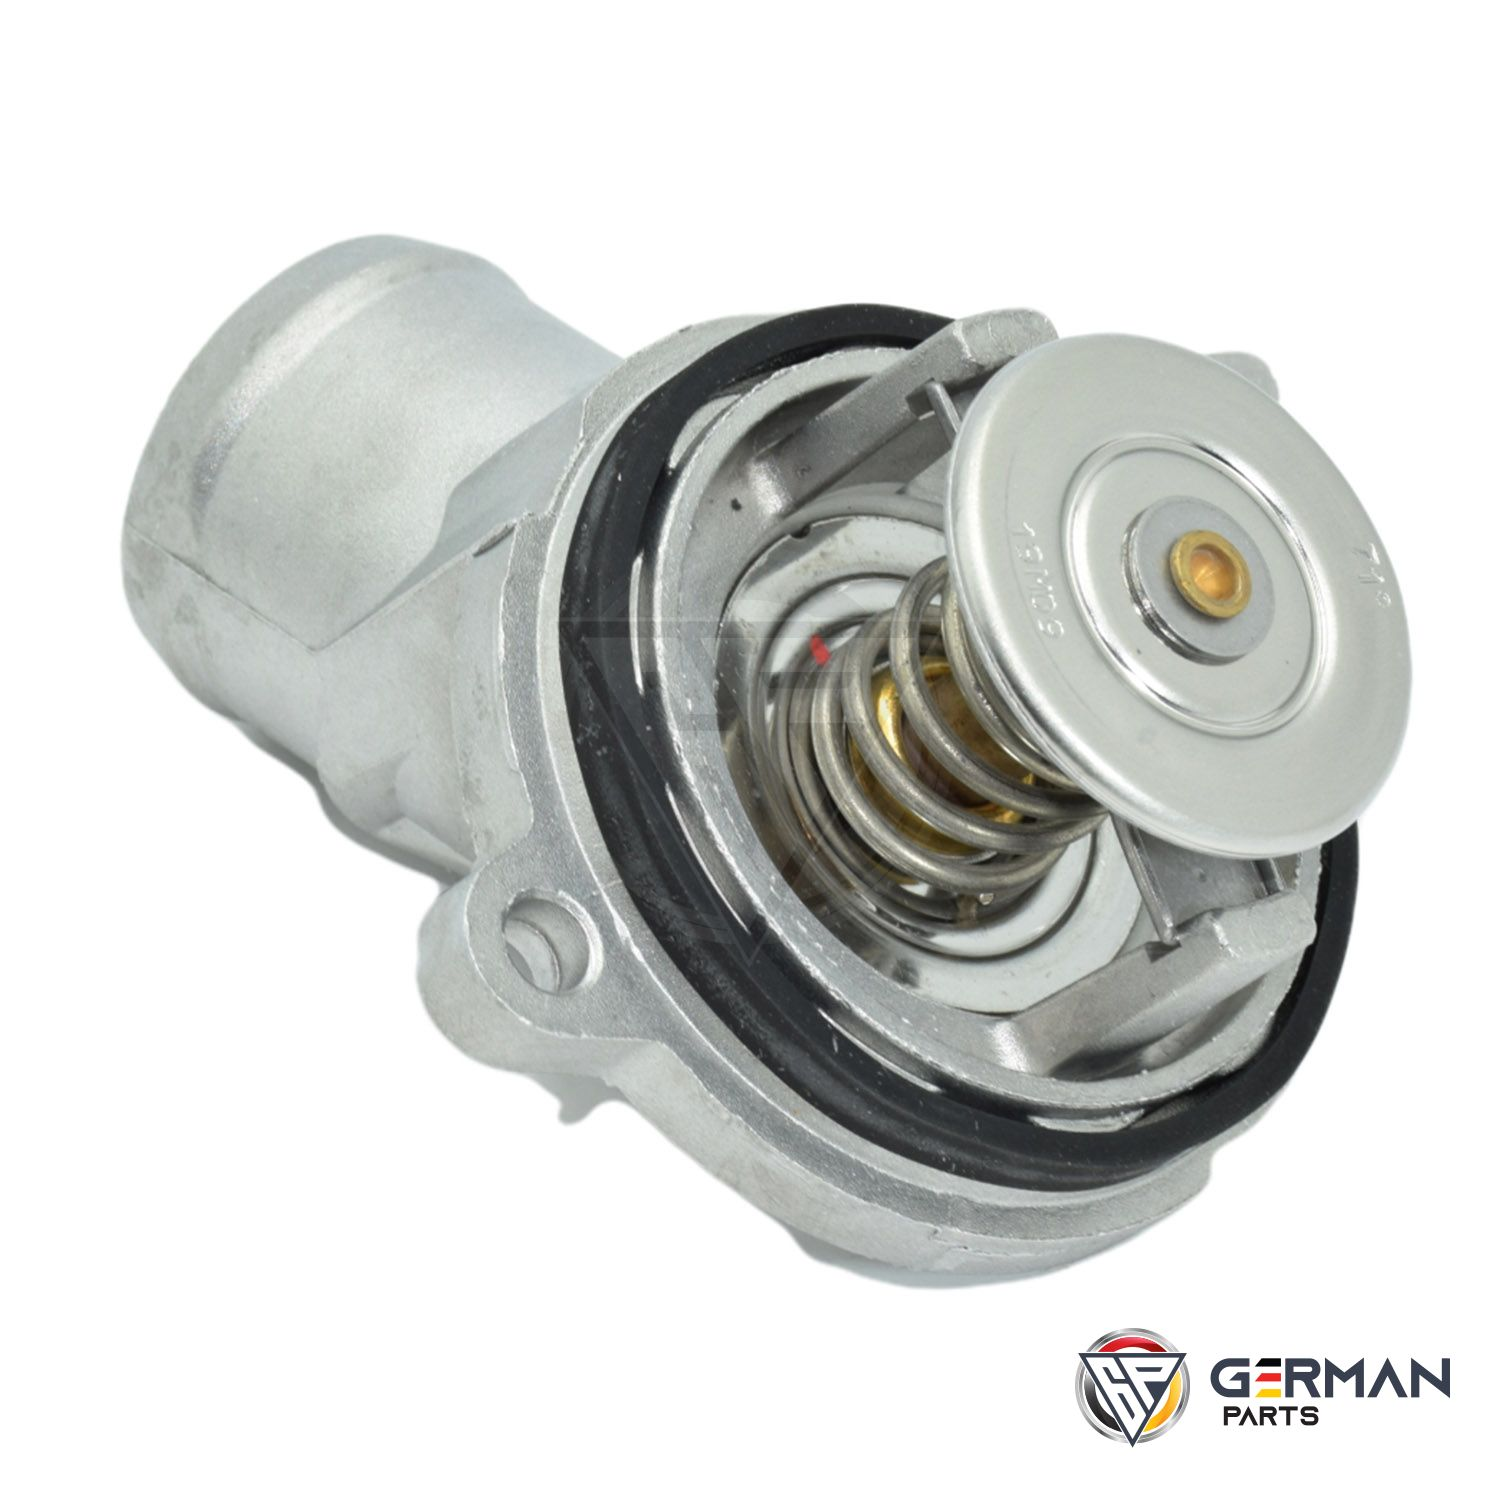 Buy Wahler Thermostat Valve 1122030275 - German Parts